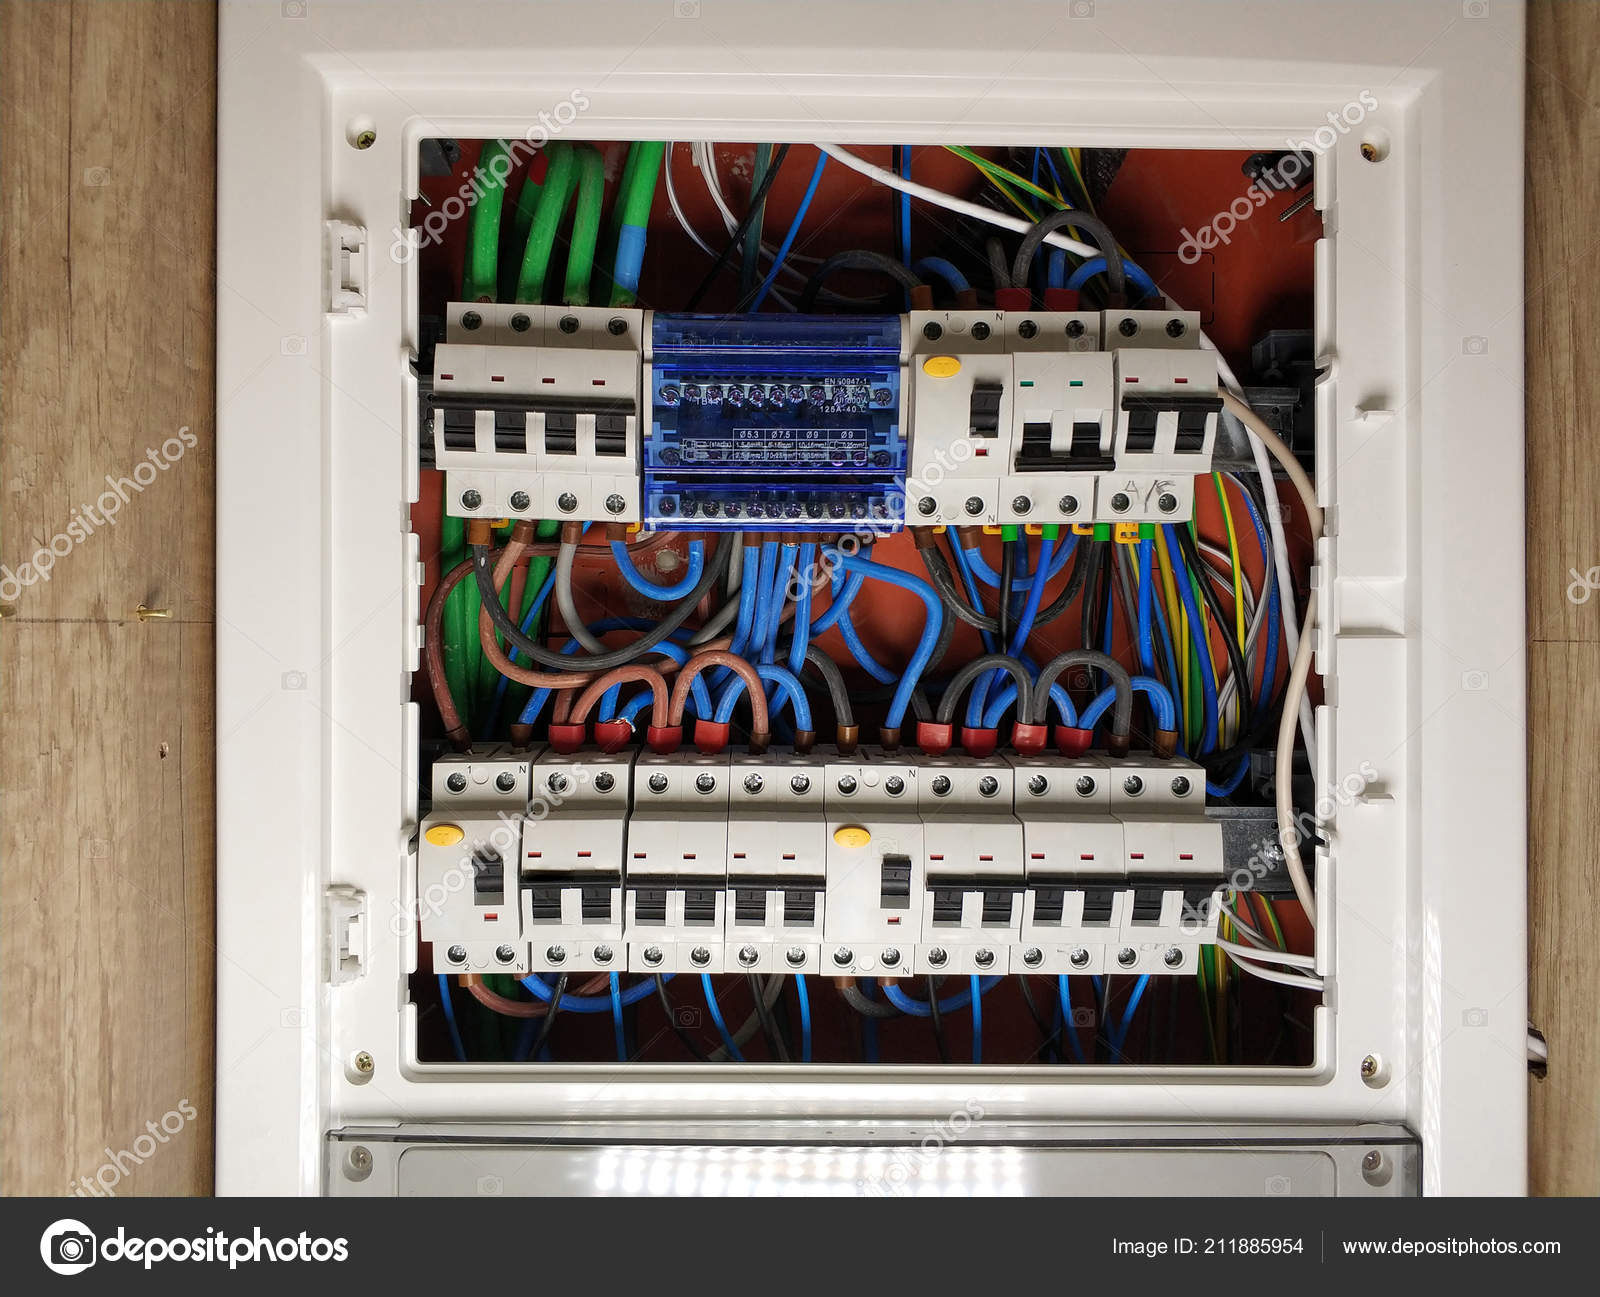 Magnificent Close White Frame Panel Electrical Switch Board Colourful Cables Wiring Digital Resources Sapebecompassionincorg